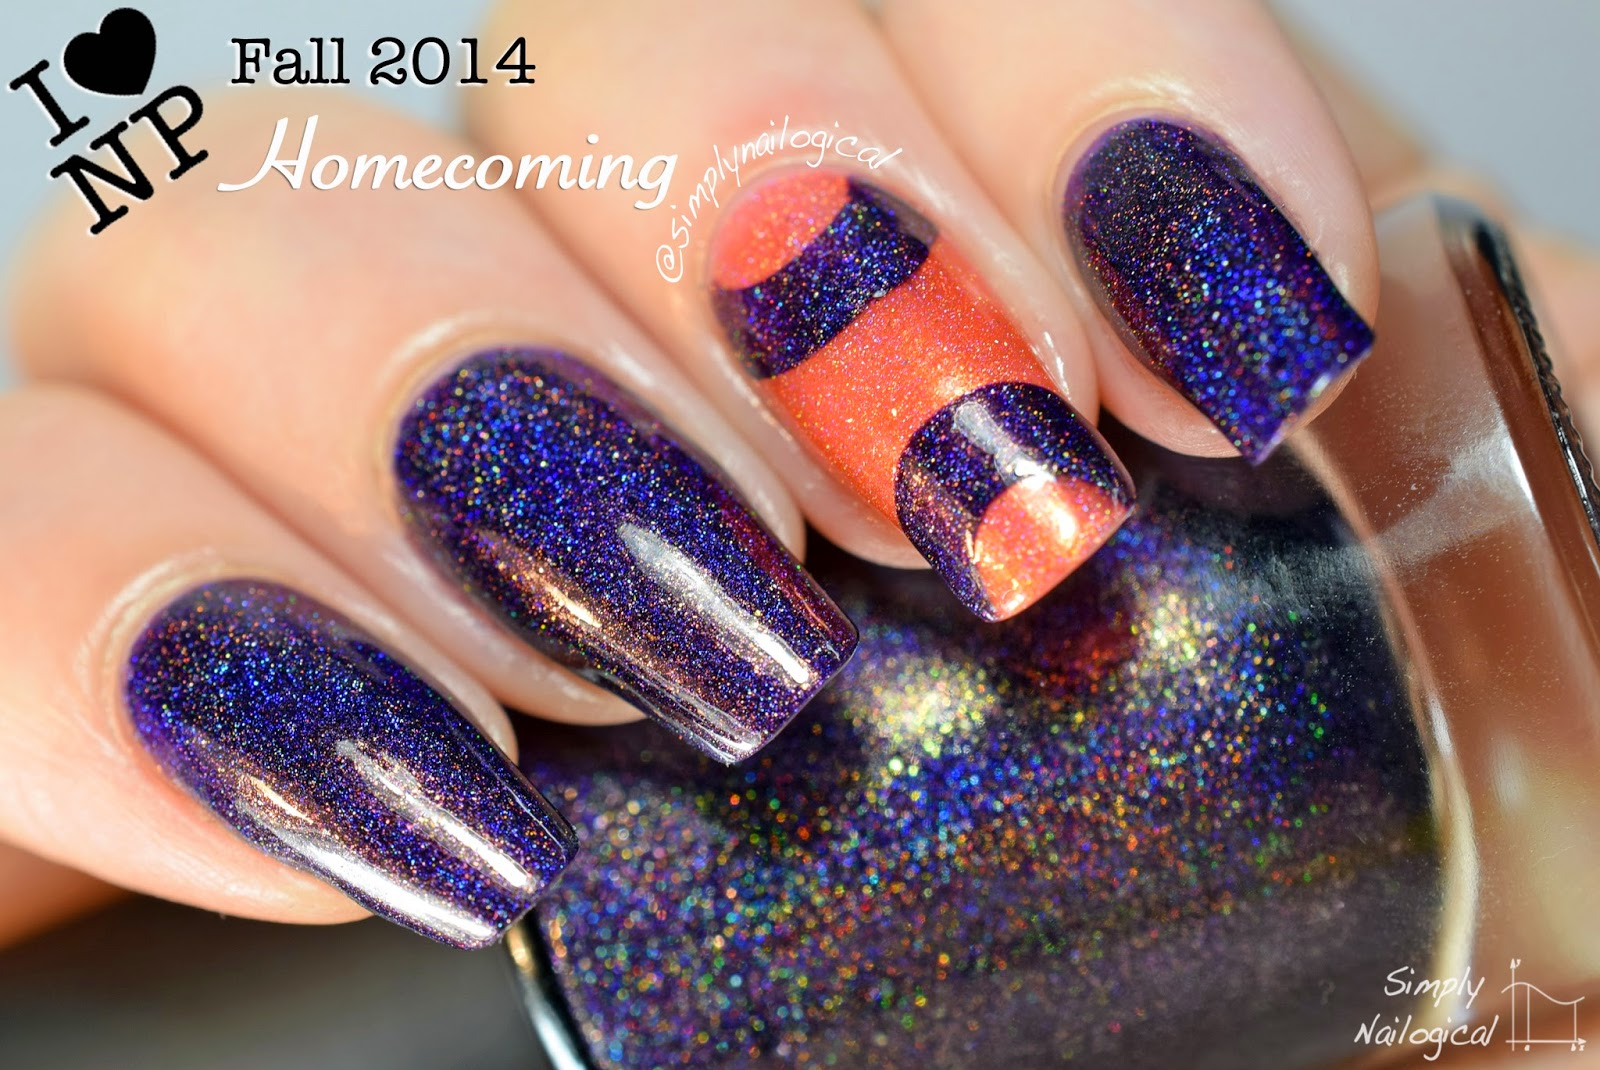 Homecoming - ILNP Fall 2014 collection swatch